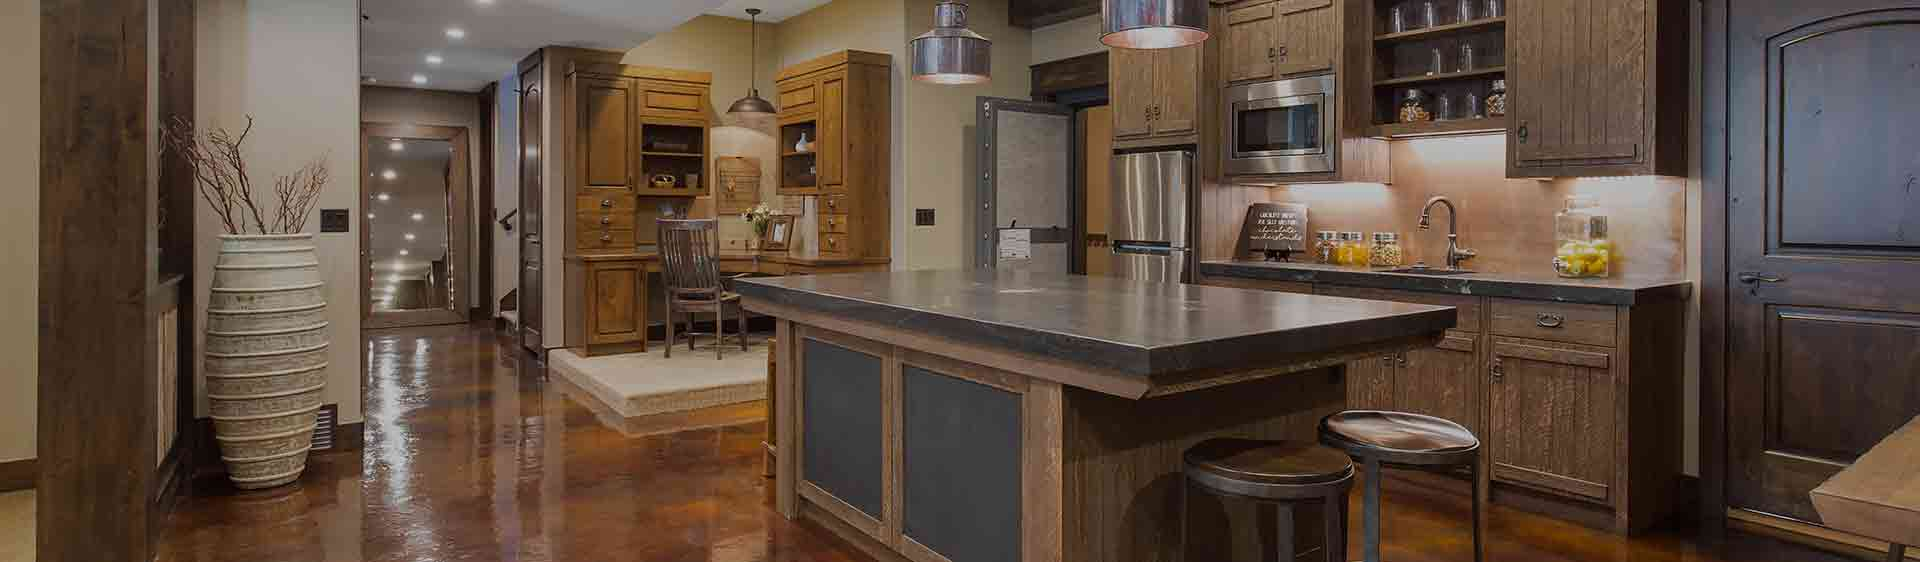 Morrow Epoxy Countertops, Painting Contractor and Tile Contractor